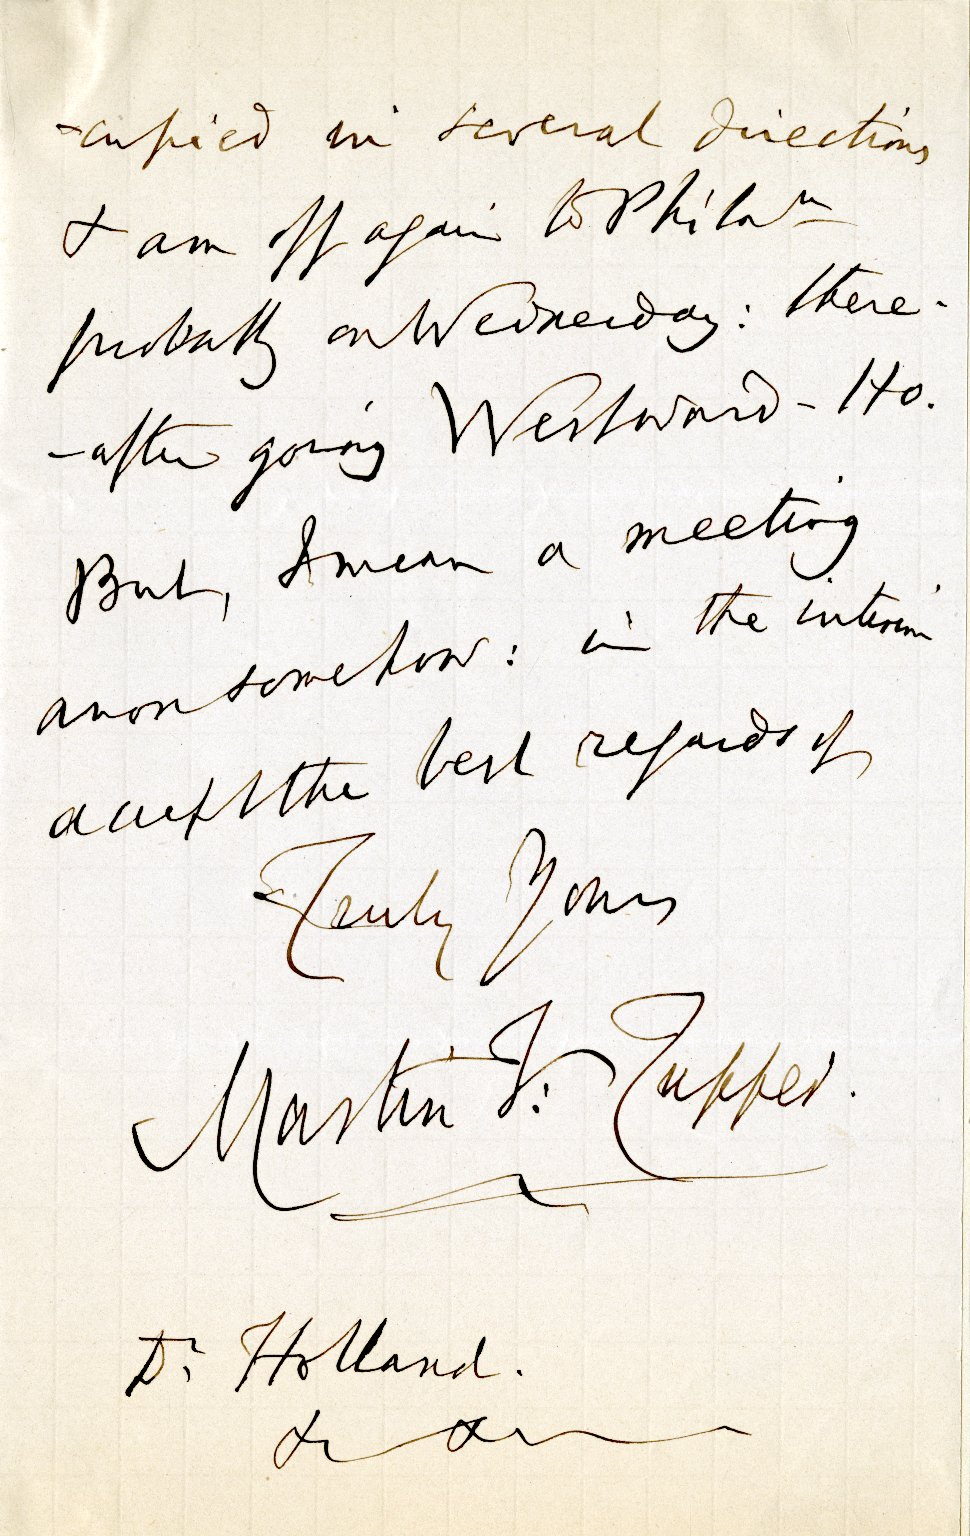 Tupper, Martin. ALS, 2 pages, November 6, 1876.